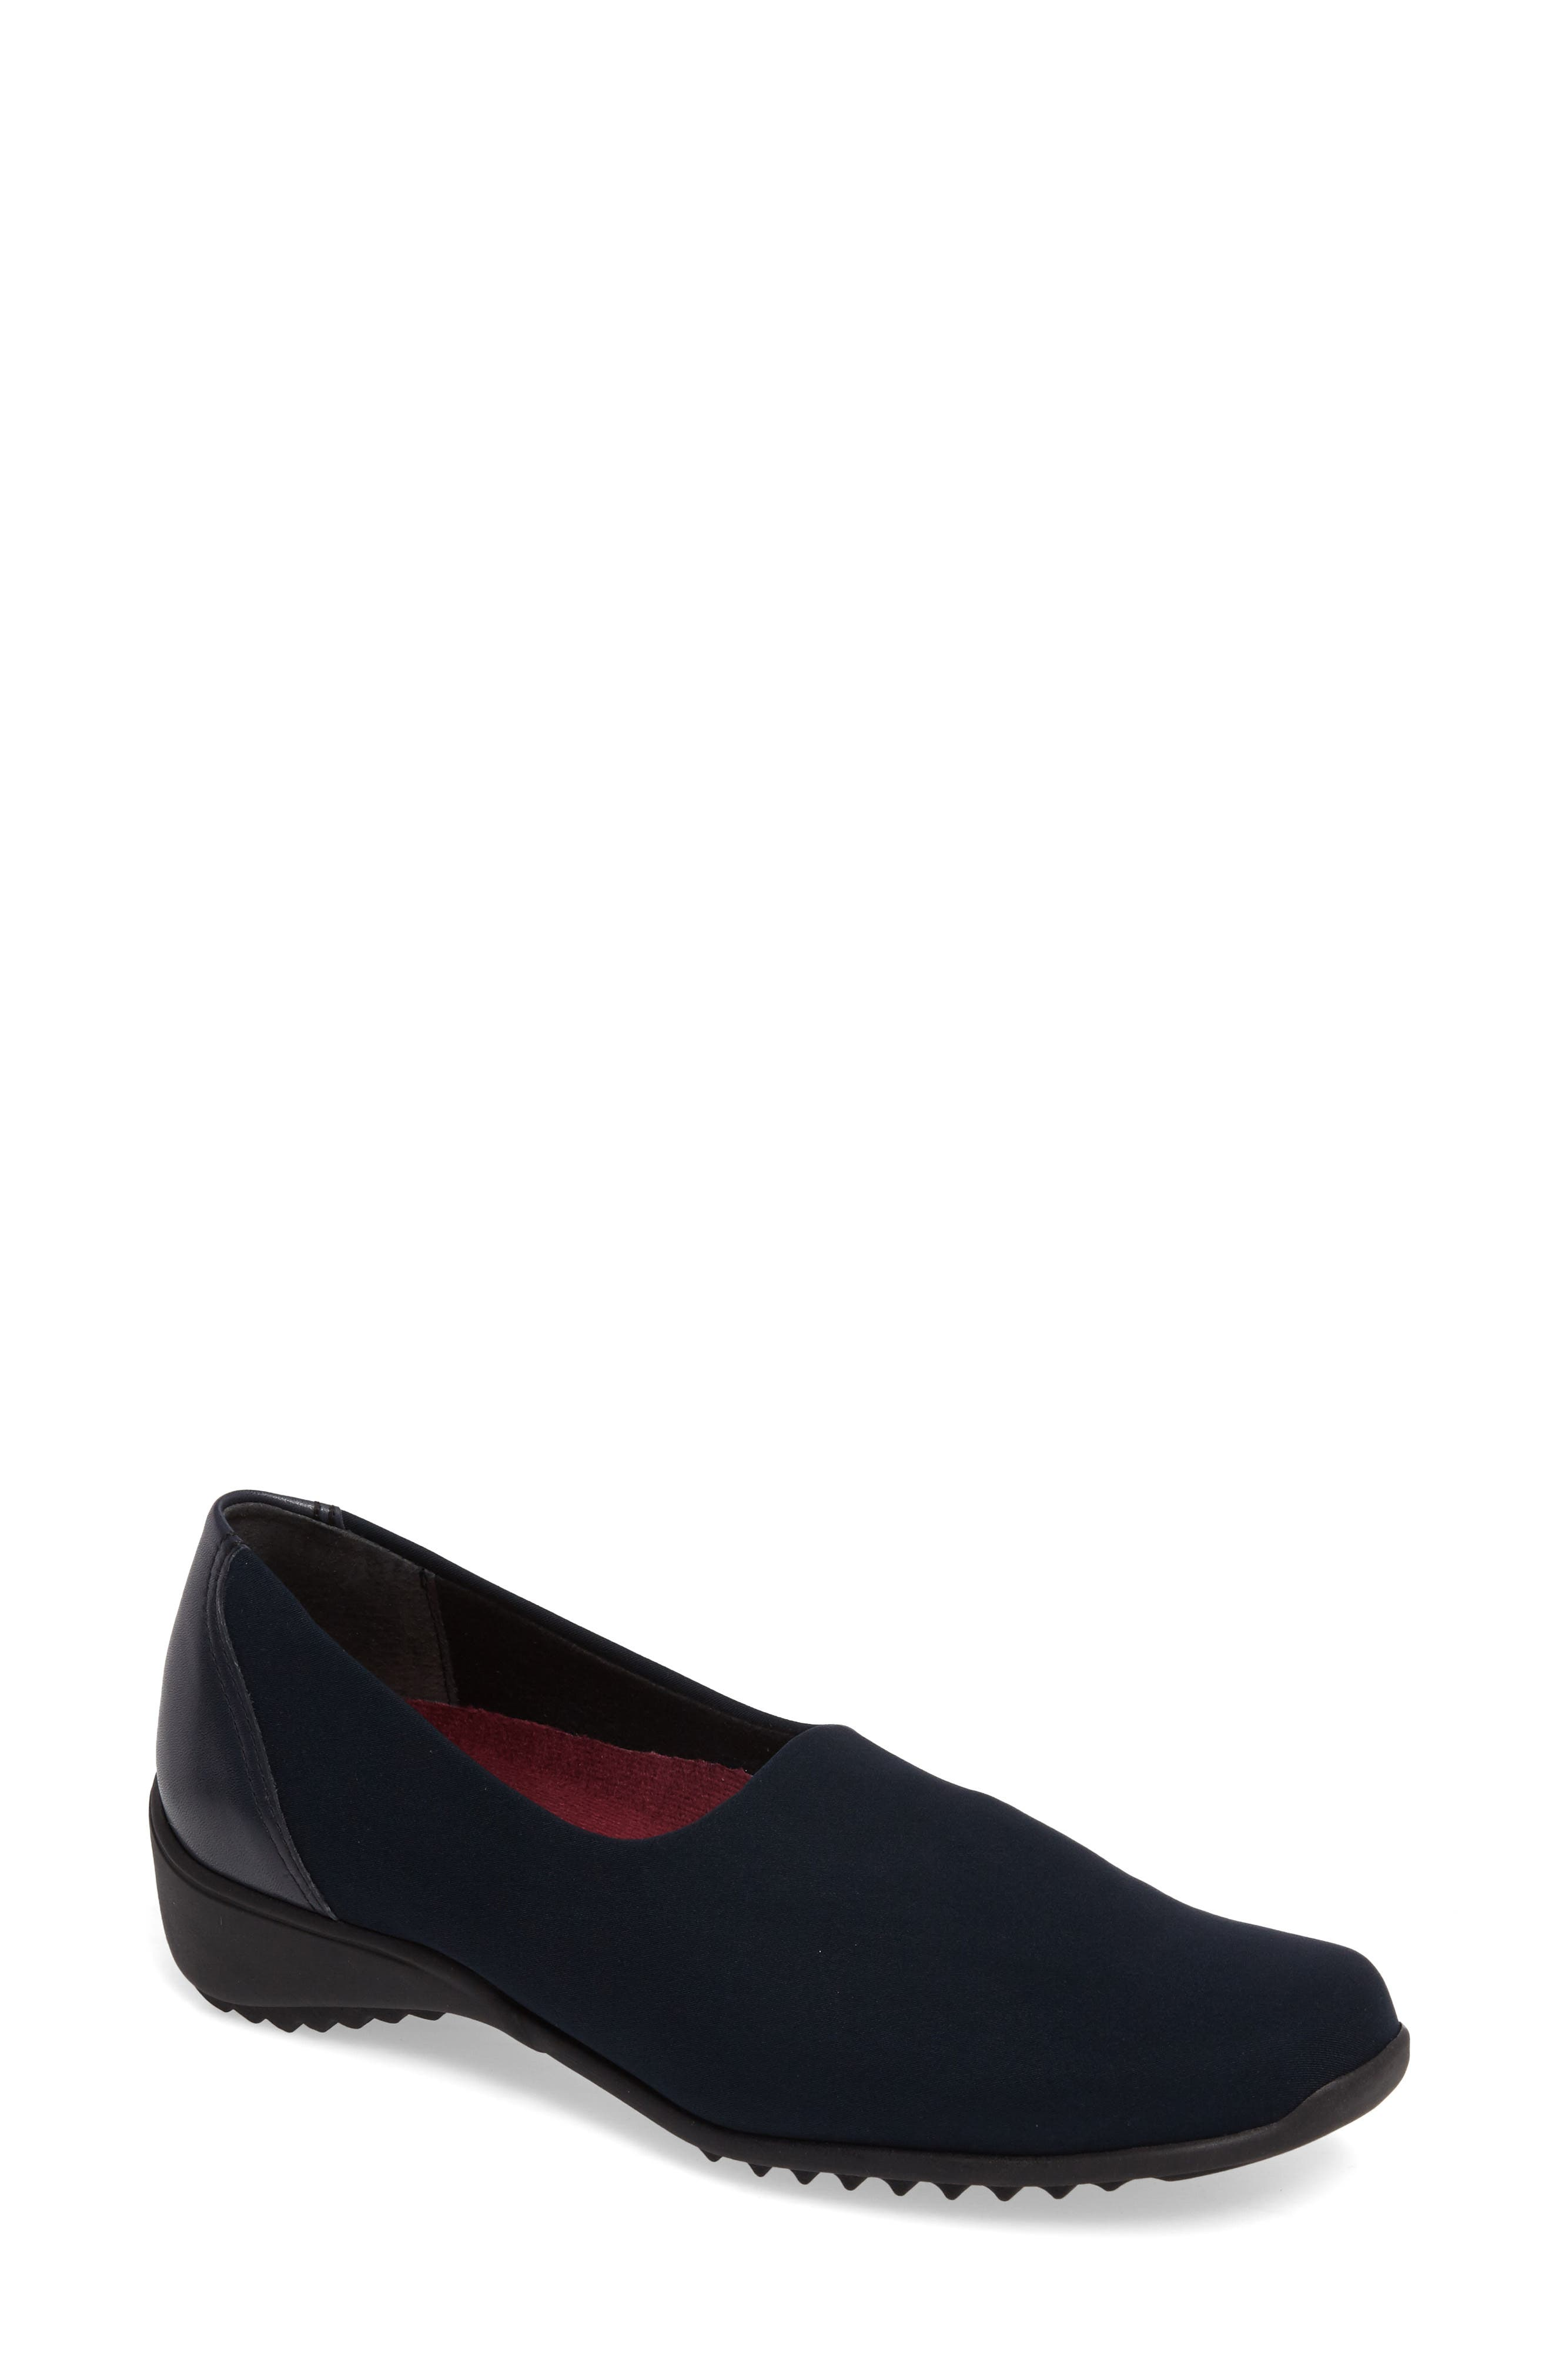 'Traveler' Slip-On,                             Main thumbnail 1, color,                             NAVY STRETCH FABRIC